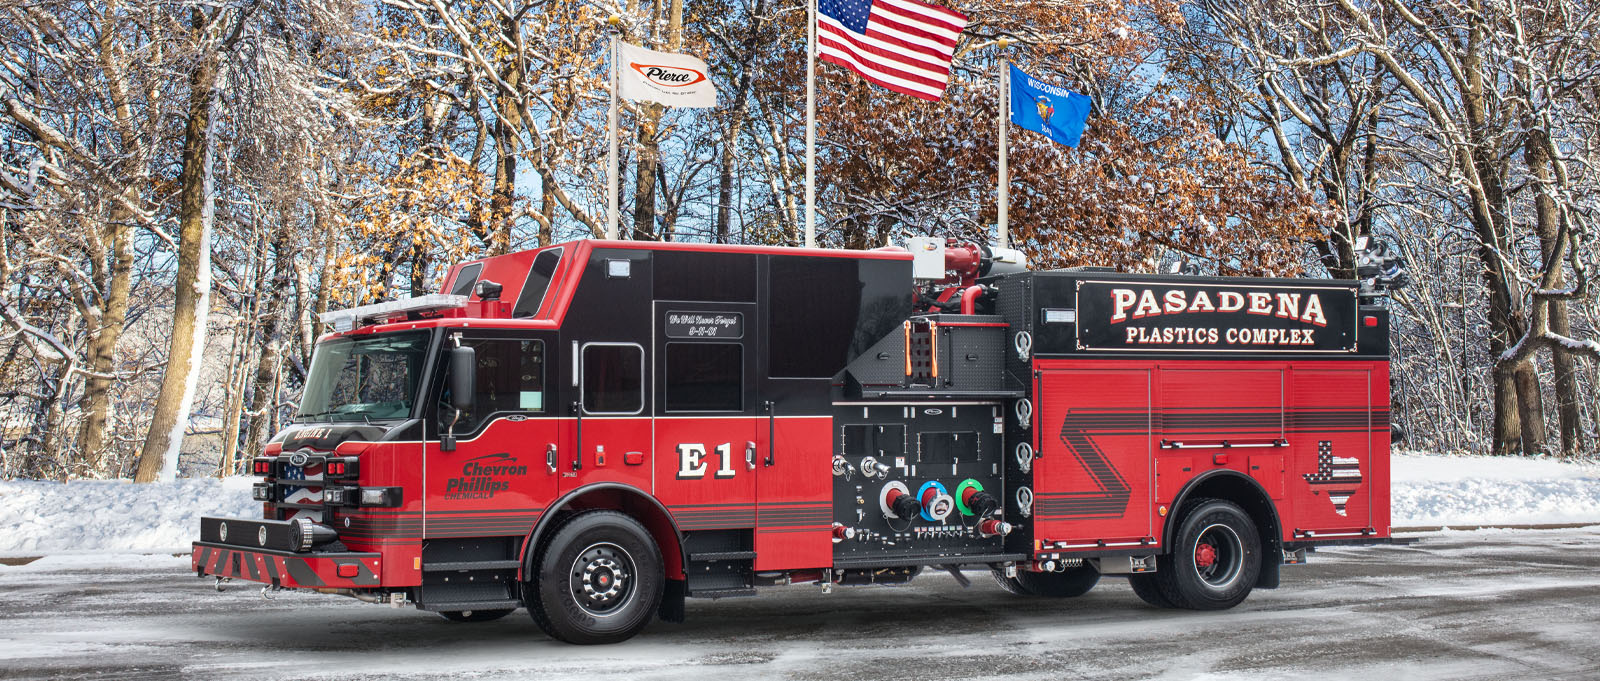 The Pasadena industrial pumper truck is pictured in winter in front of flags in the Pierce Manufacturing parking lot.